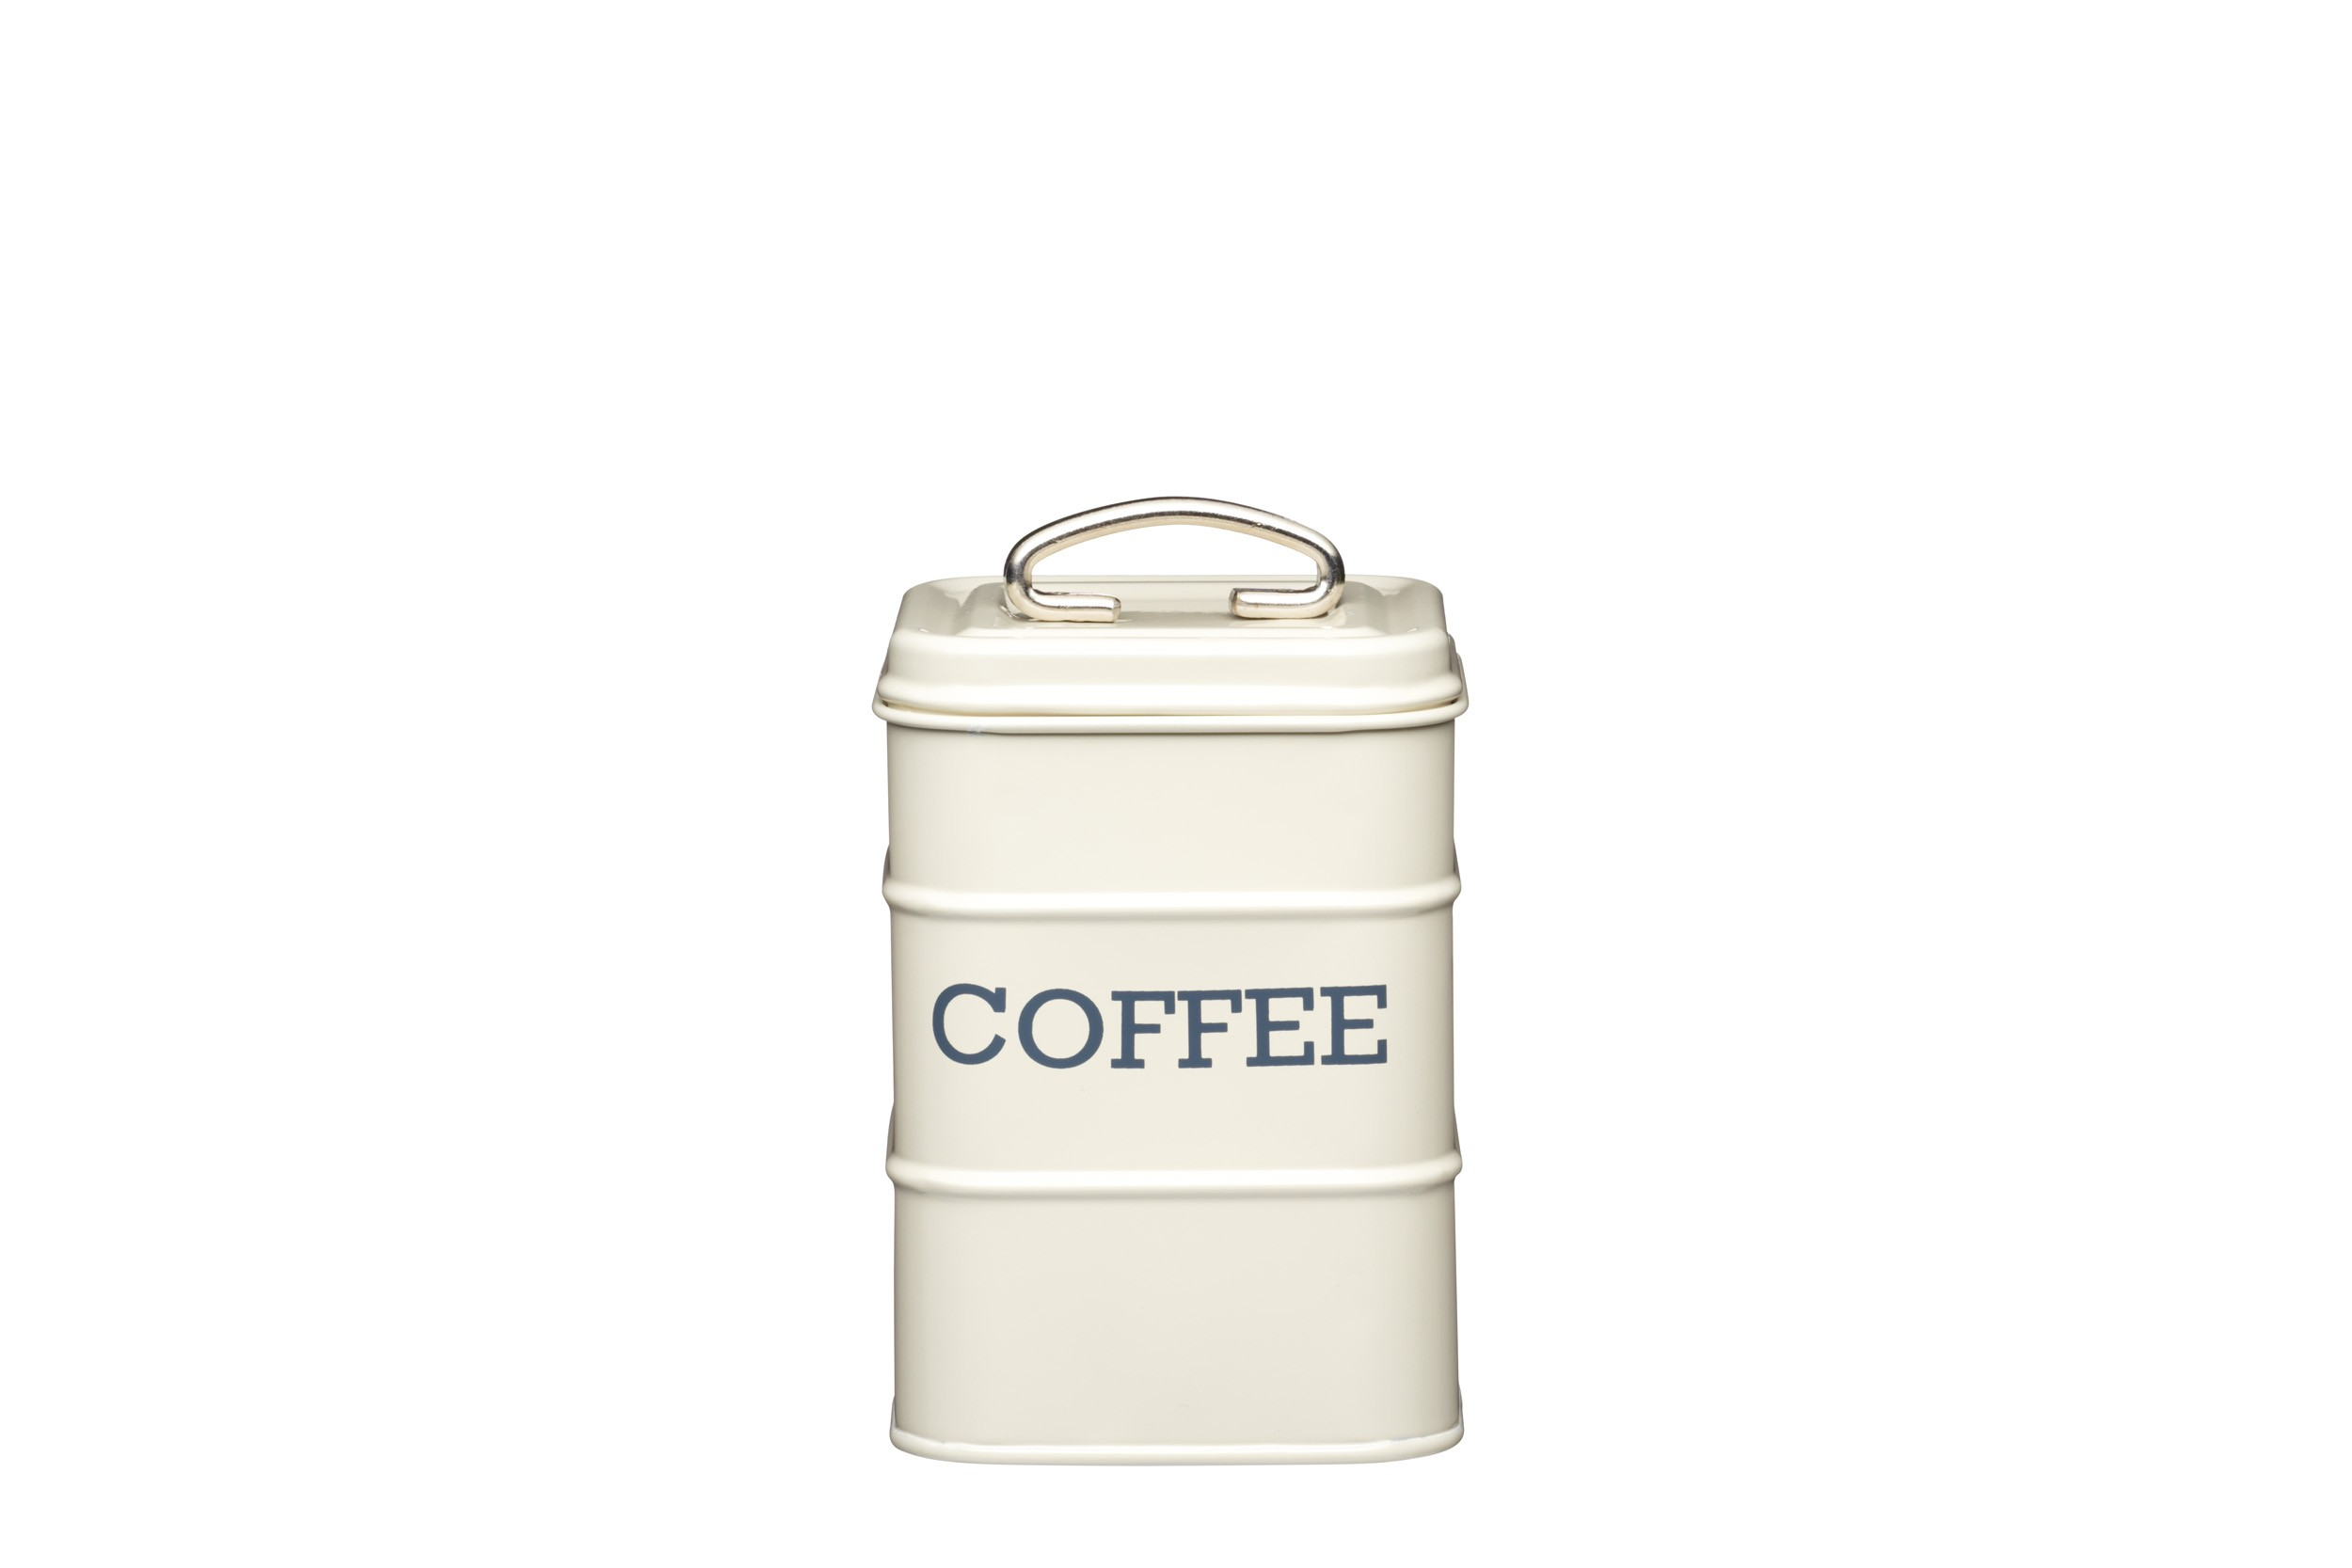 Kitchen Craft Living Nostalgia Coffee Canister Coffee 11cm X 17cm